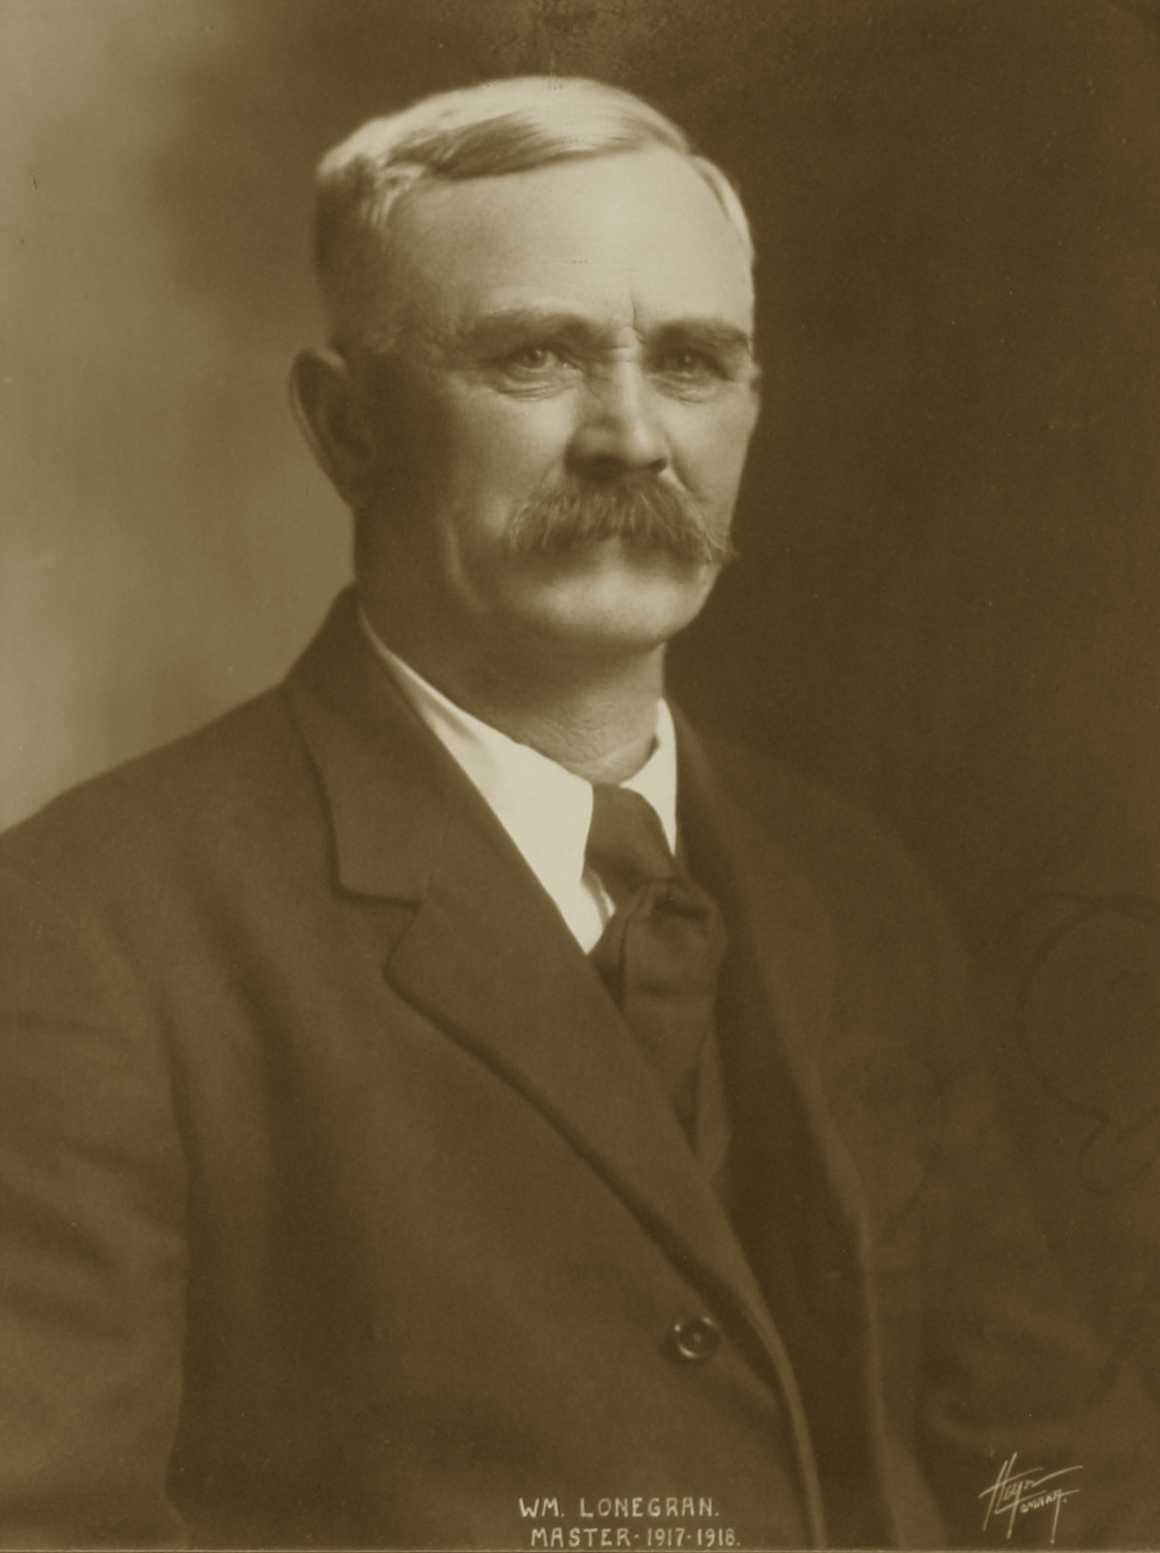 William Lonegran, 1917-1918